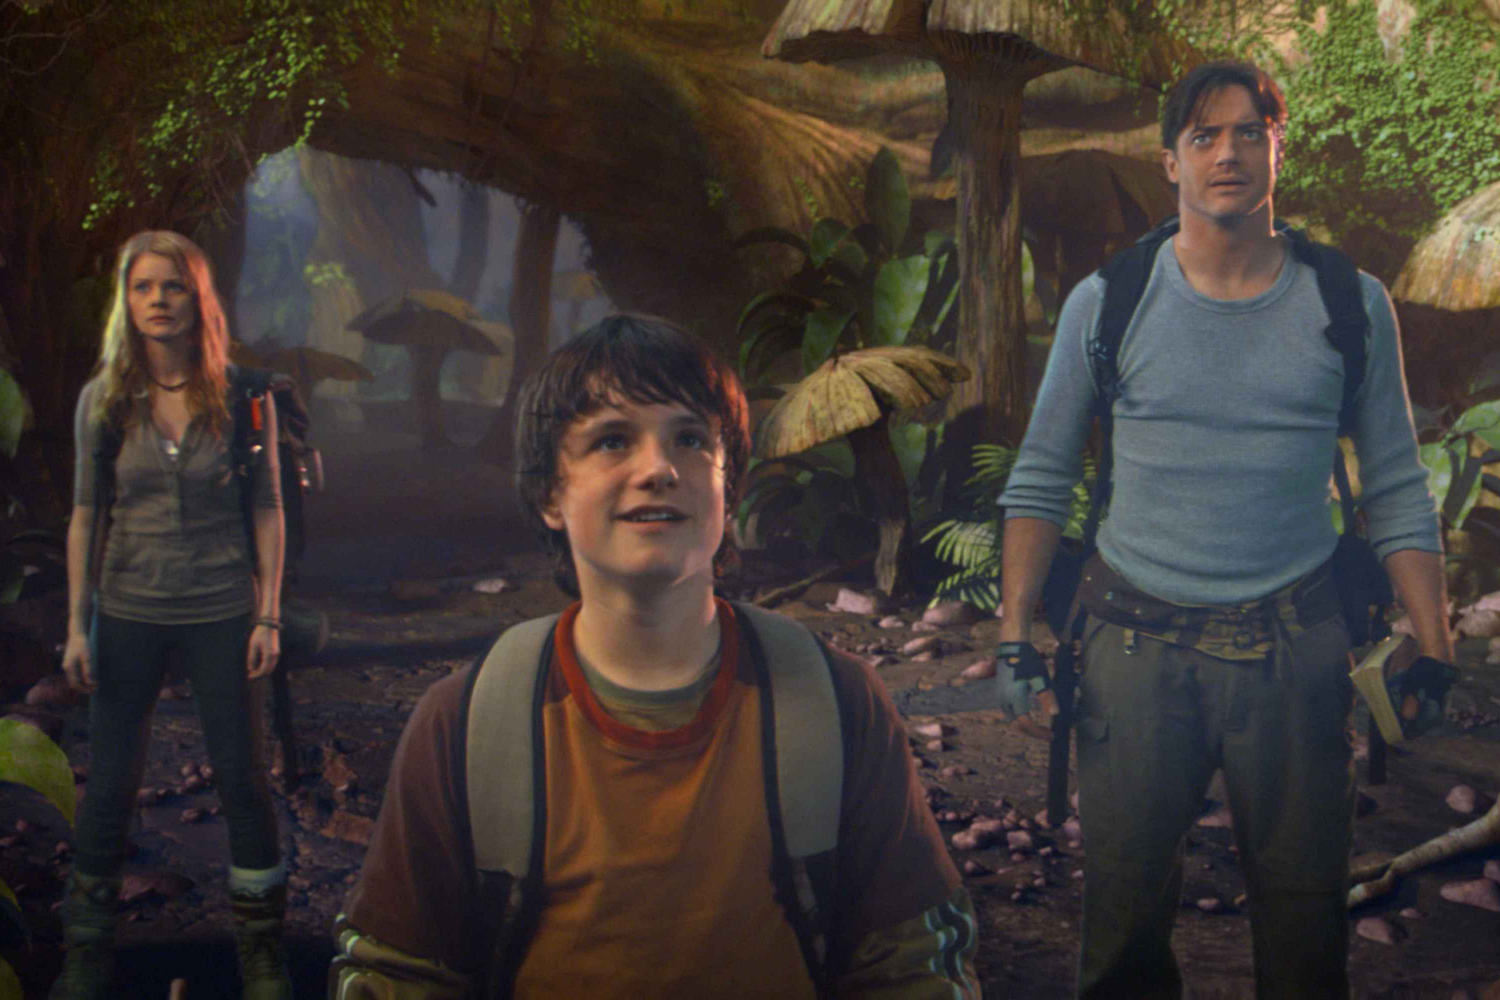 (left to right) Anita Briem stars as ÒHannahÓ, Josh Hutcherson stars as ÒSeanÓ and Brendan Fraser stars as ÒTrevorÓ in New Line CinemaÕs release of Eric BrevigÕs JOURNEY TO THE CENTER OF THE EARTH. PHOTOGRAPHS TO BE USED SOLELY FOR ADVERTISING, PROMOTION, PUBLICITY OR REVIEWS OF THIS SPECIFIC MOTION PICTURE AND TO REMAIN THE PROPERTY OF THE STUDIO. NOT FOR SALE OR REDISTRIBUTION.